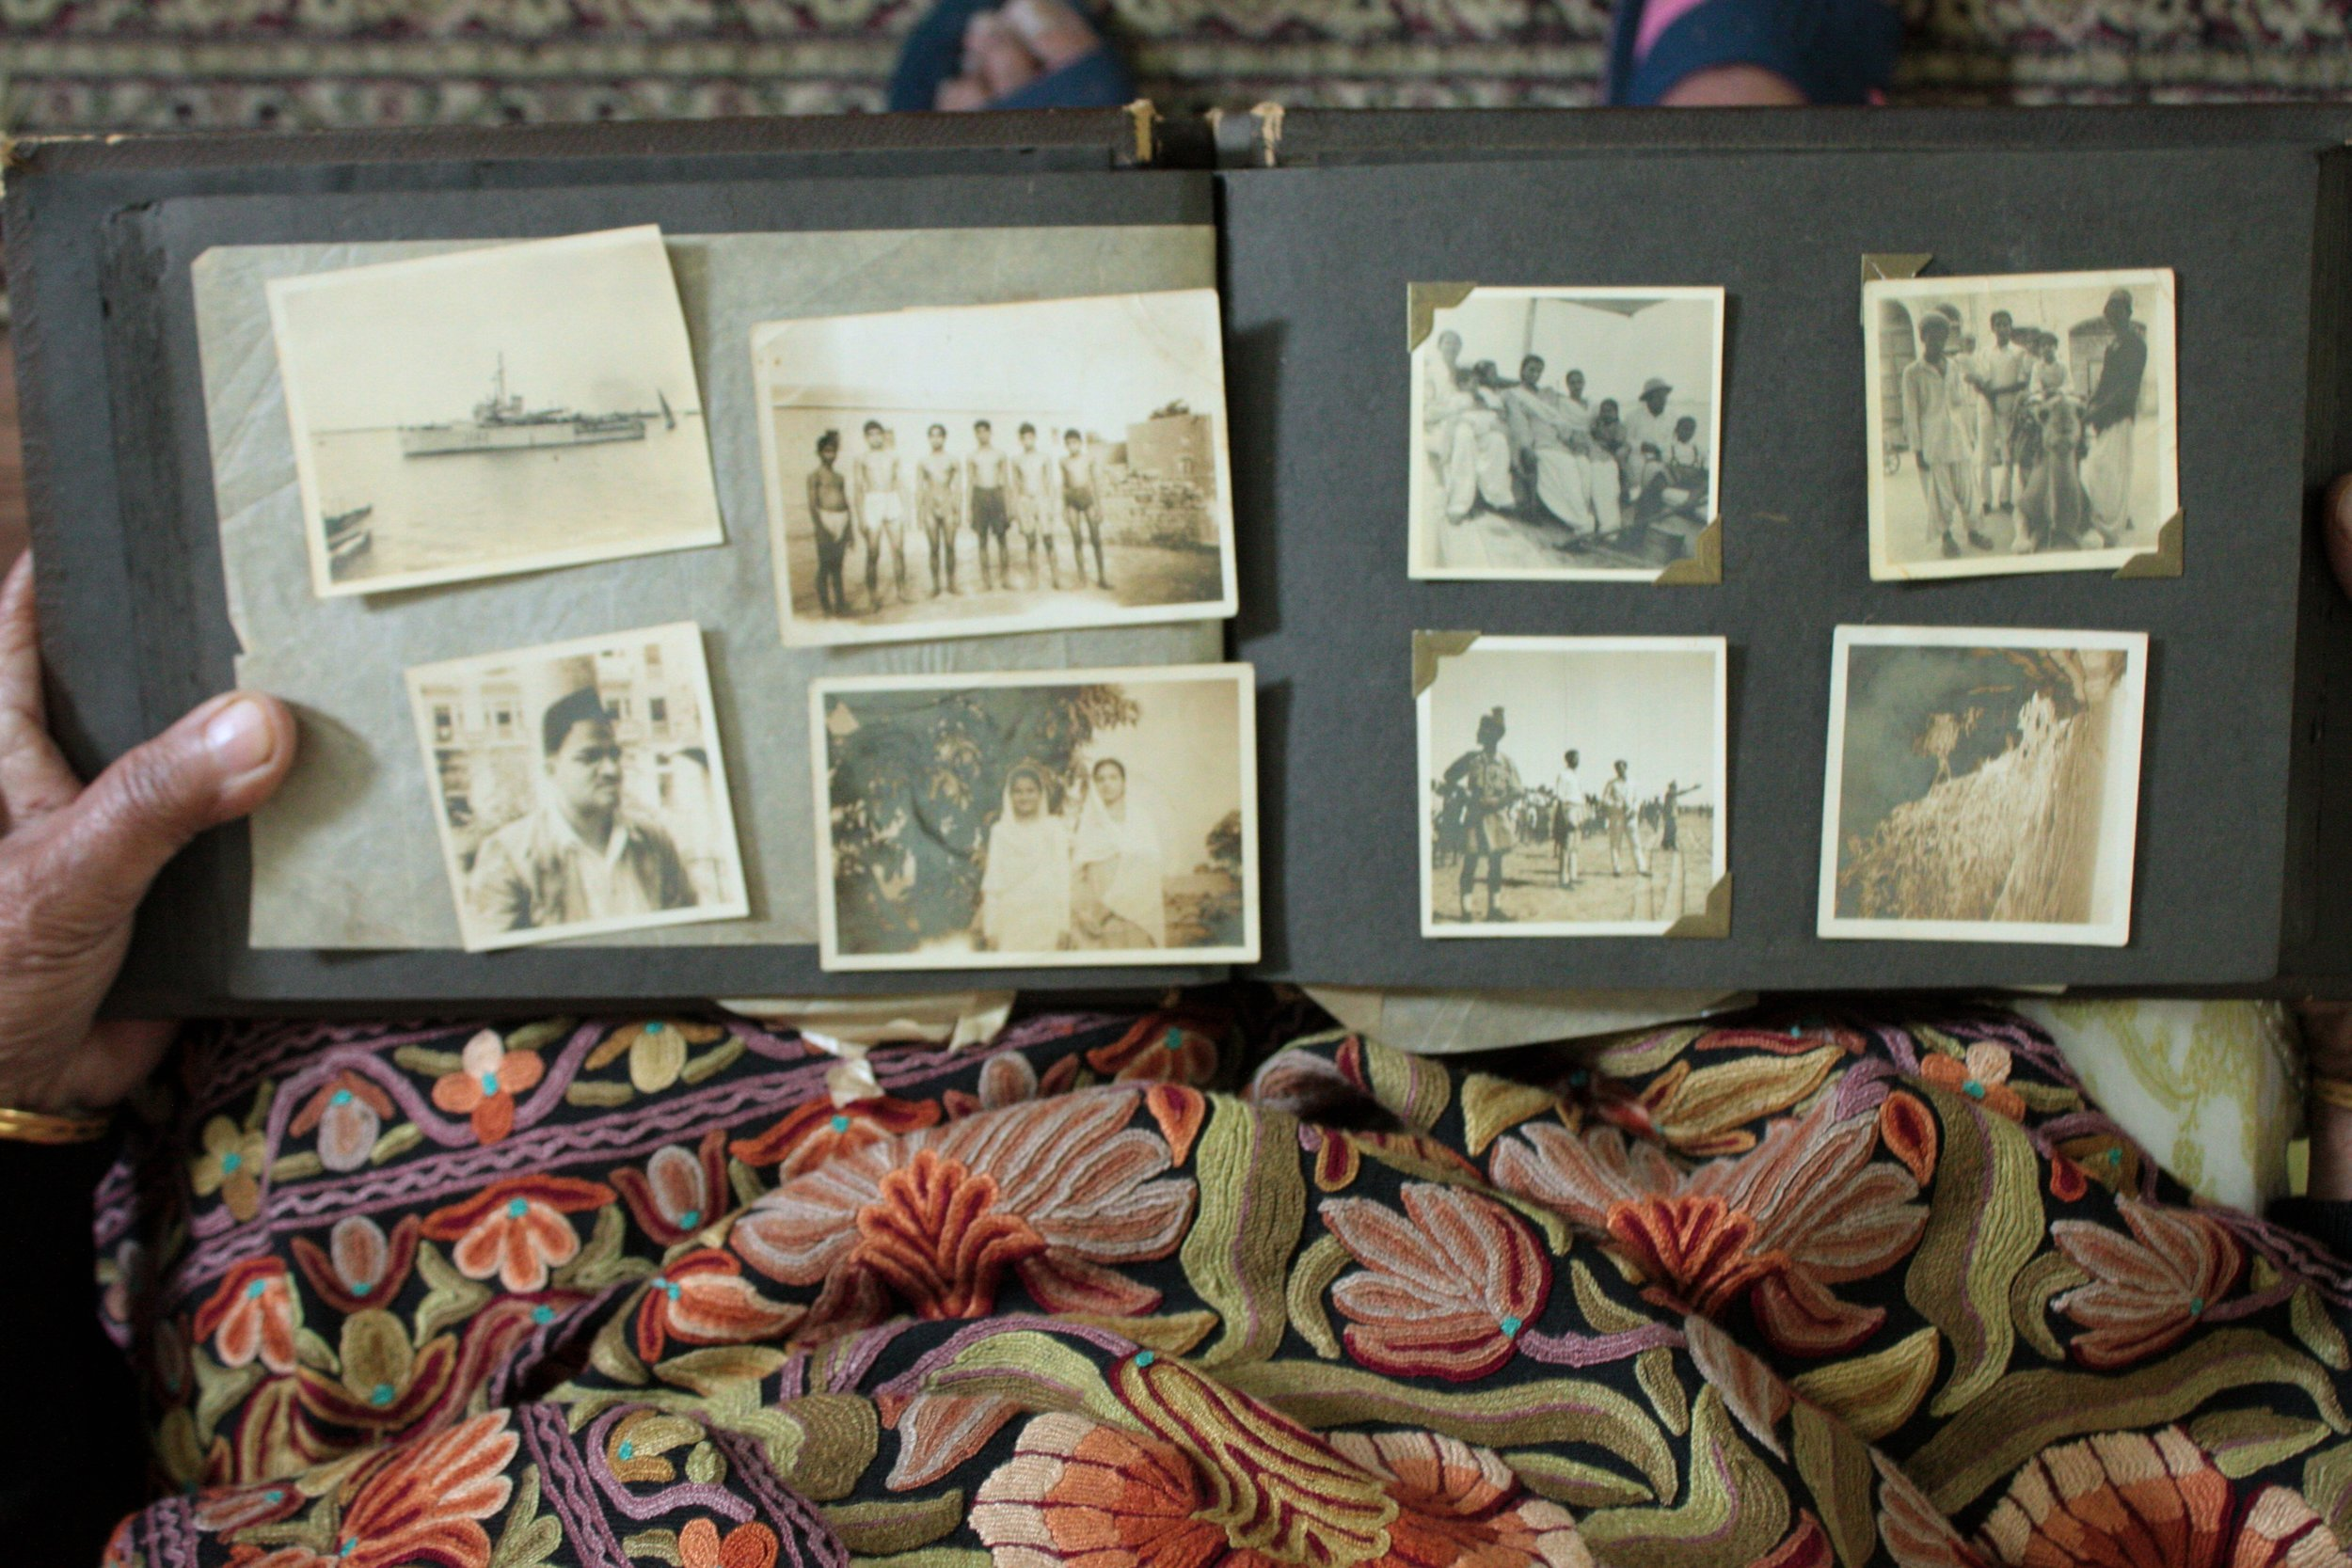 A photo album showing pictures of childhood summers spent in Karachi, carried from Jhang-now in Pakistan- to Delhi- now in India- in 1947